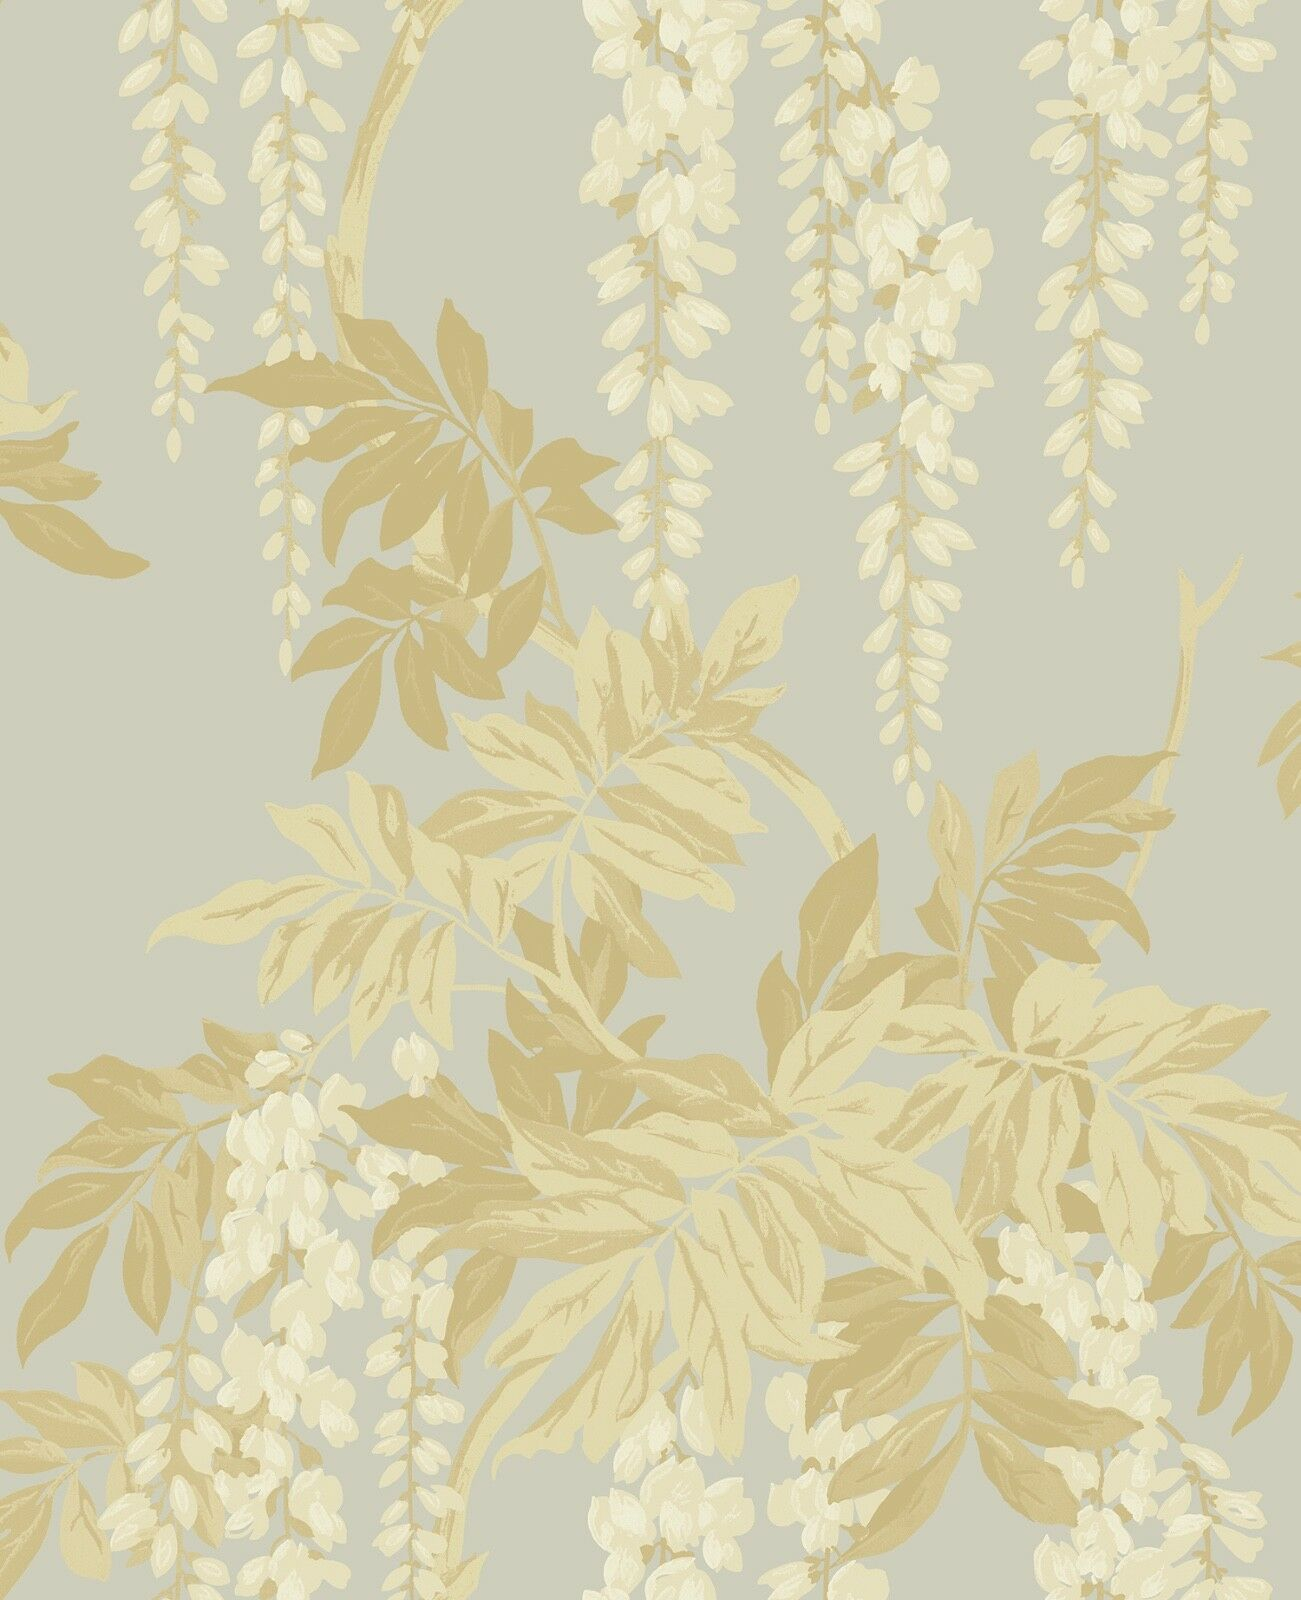 Floral Vintage Wallpaper Gold Silver Victorian Wisteria Blossoms